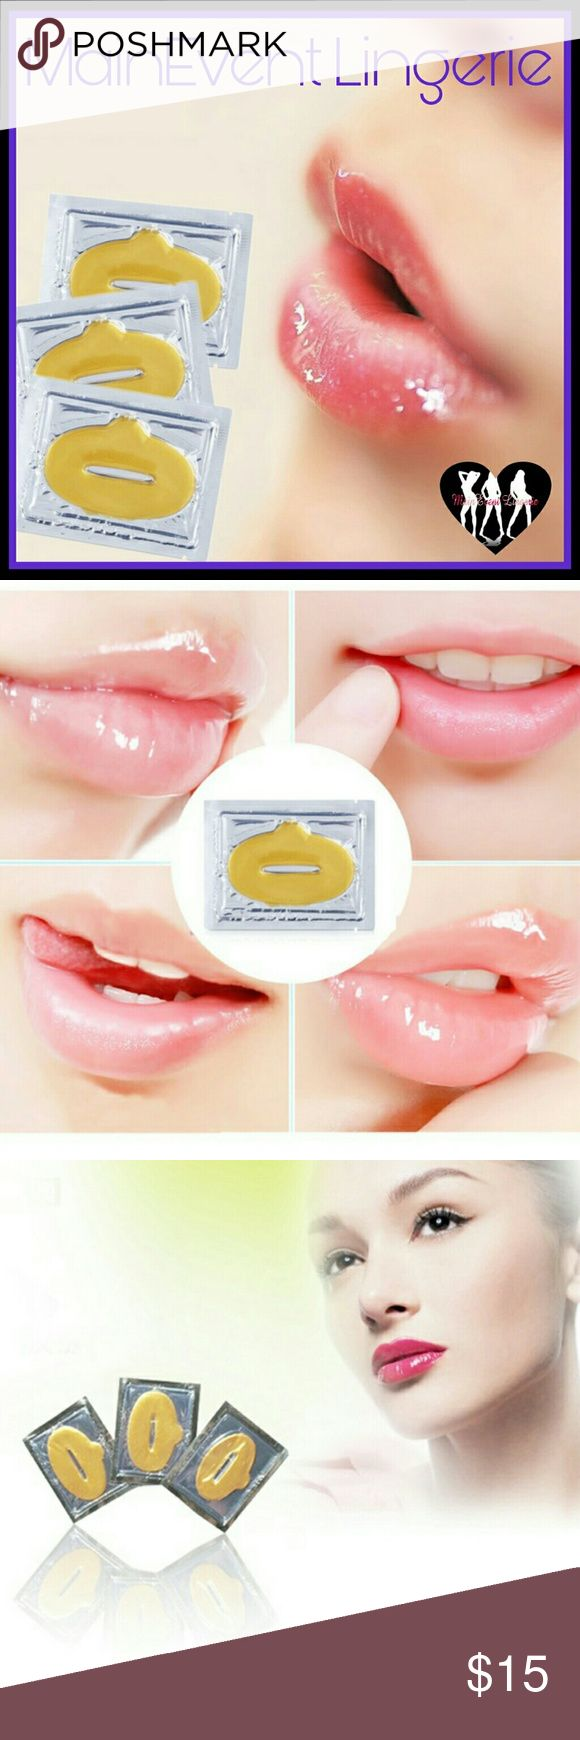 3 New Crystal Gold Gel Collagen Lip Mask Brand New!! New Crystal Gold Powder Gel Collagen Lip Mask.  3 Masks Sheet Patches.  Gold Collagen Crystal Lip Mask Lip Care Gel Mask Moisturizing Hydrating Repair Remove Lines Blemishes Fuller Lip Care. Makeup Lip Balm & Gloss